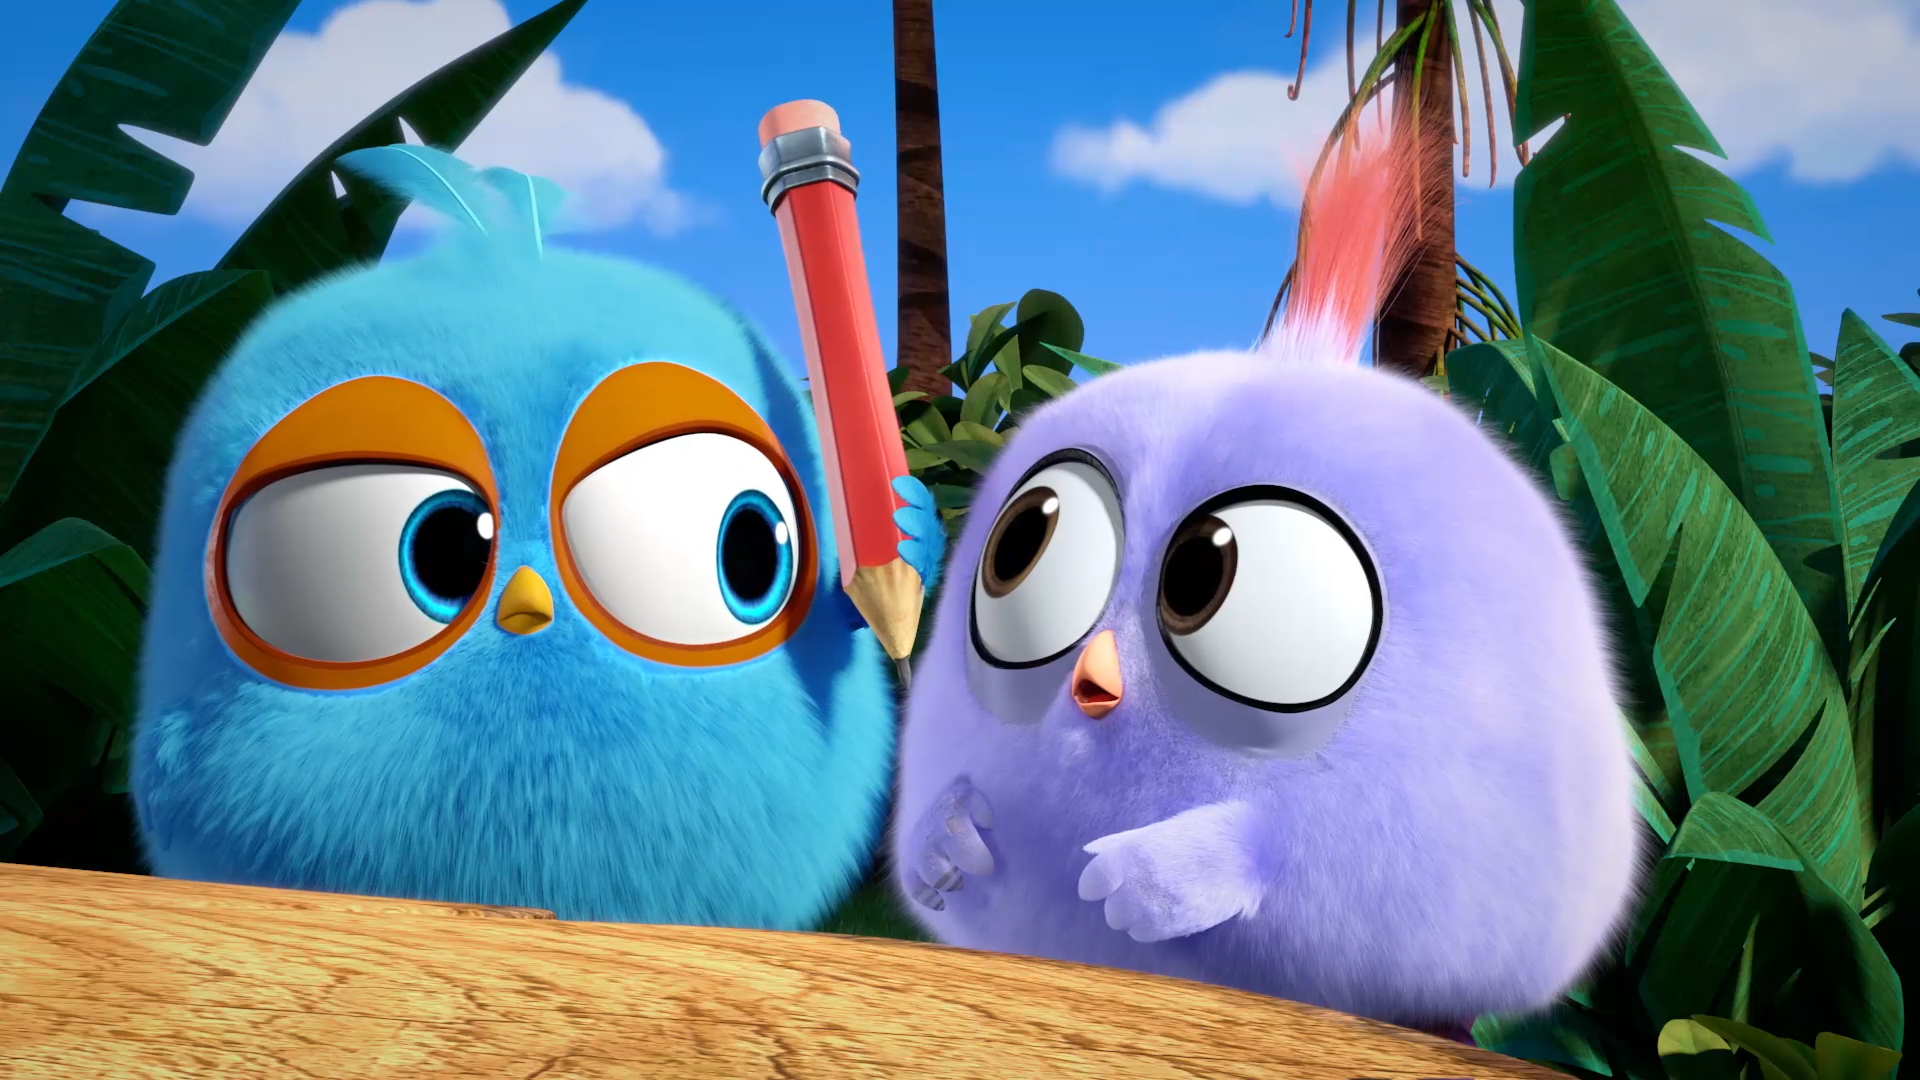 Finland's Laura Nevanlinna: 'Learning from Angry Birds'